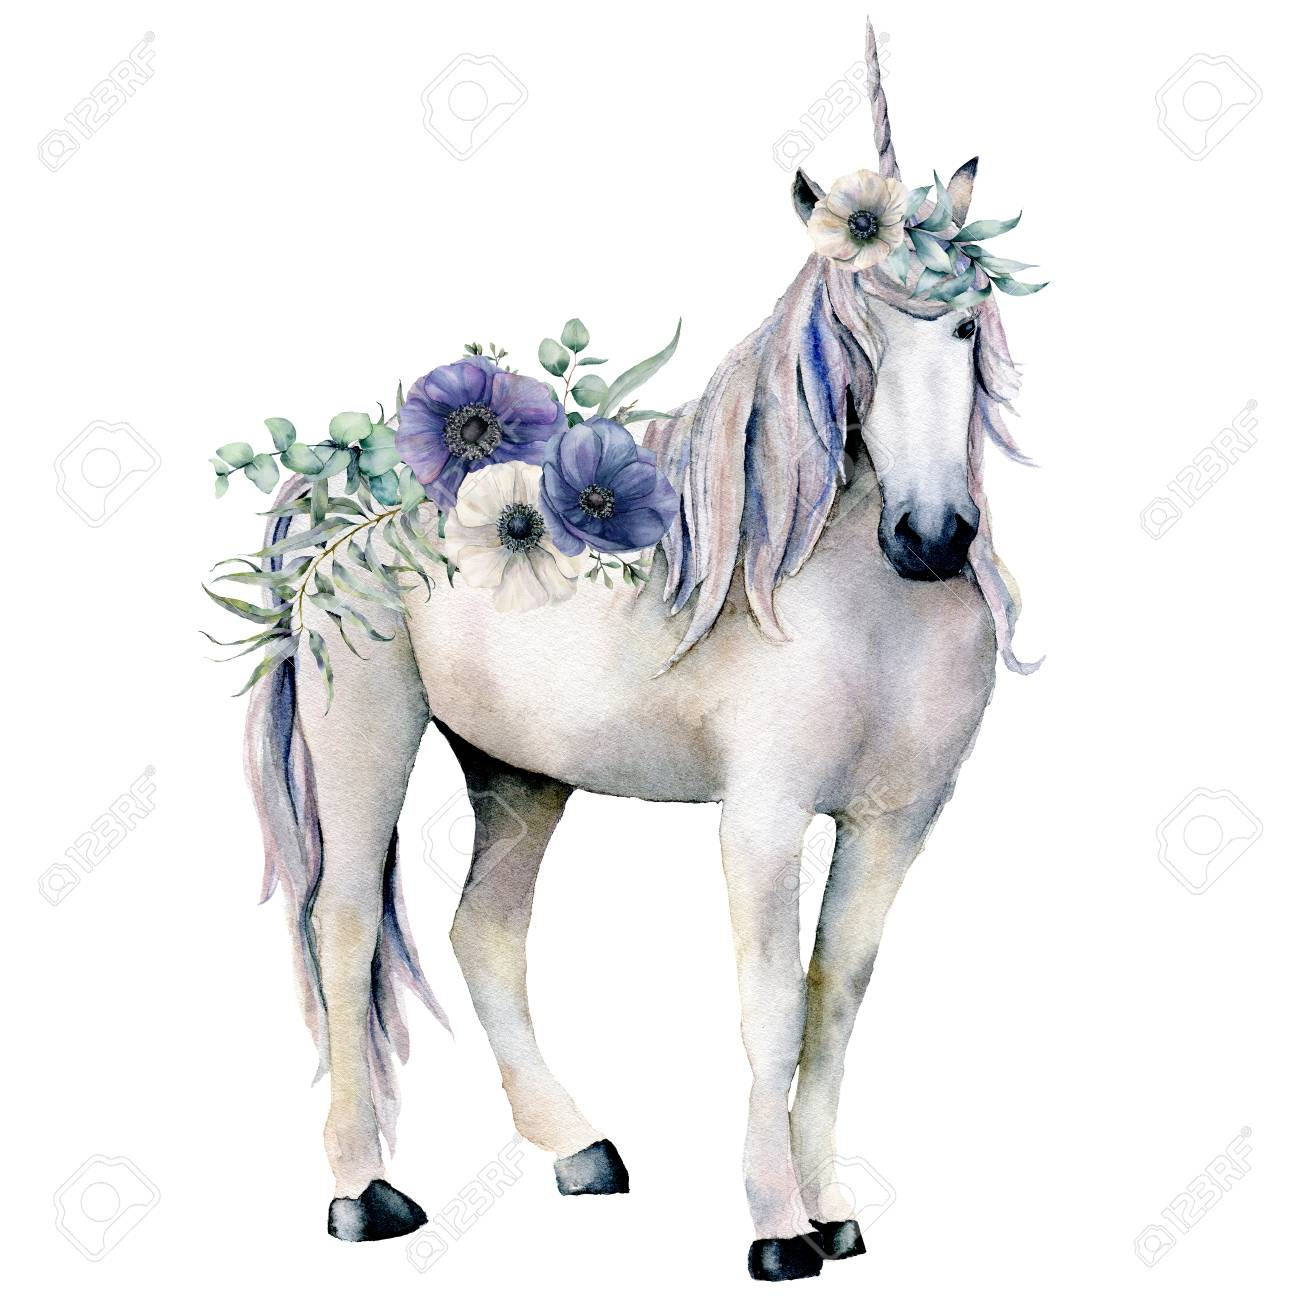 Watercolor Elegant White Unicorn With Anemone Flowers Bouquet Stock Photo Picture And Royalty Free Image Image 110039114